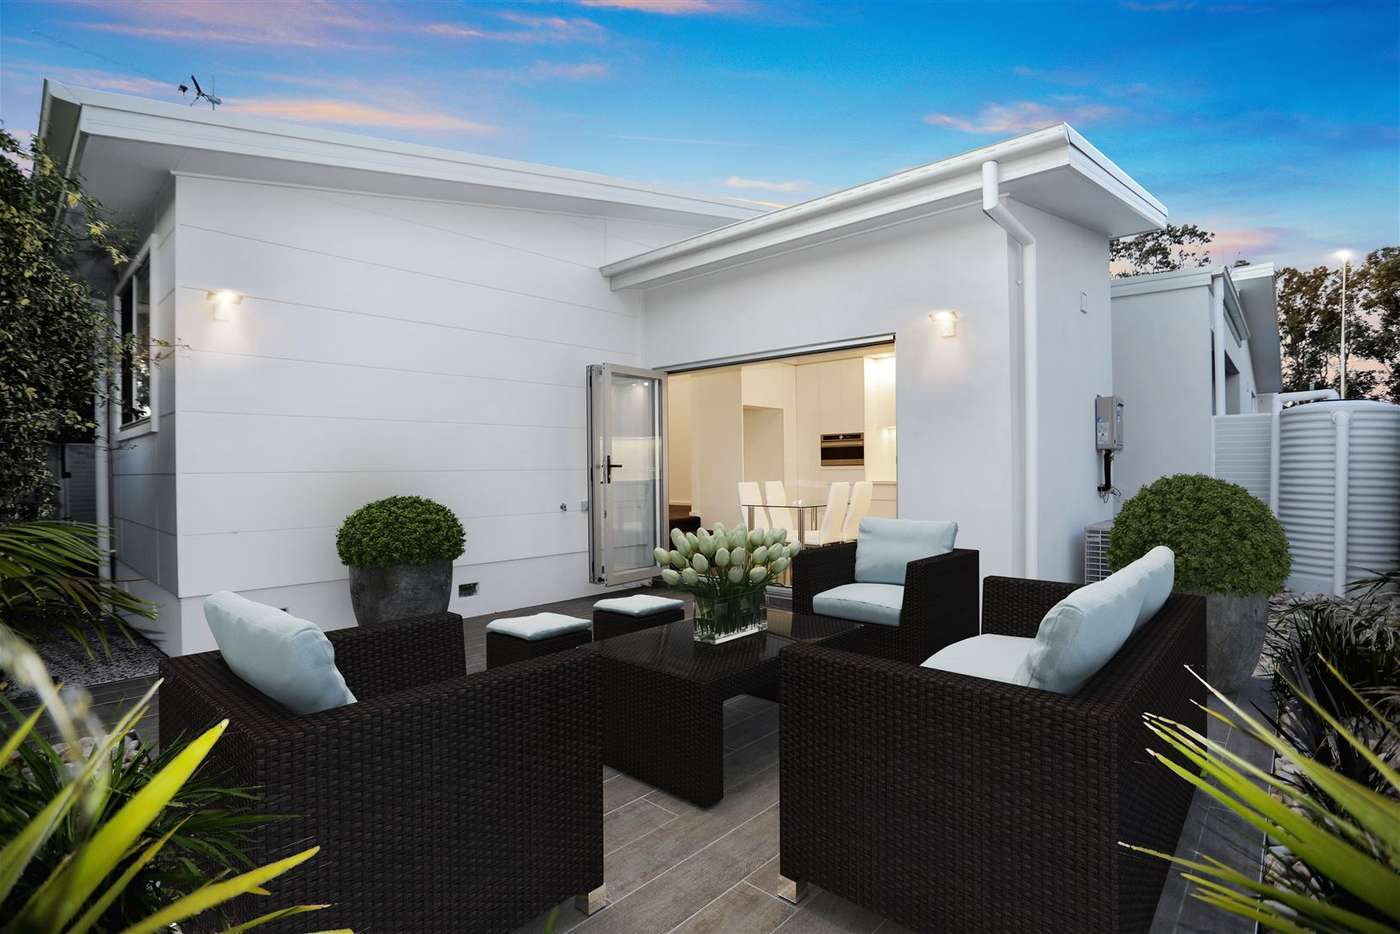 Seventh view of Homely villa listing, 4/54-56 Jason Avenue, Barrack Heights NSW 2528